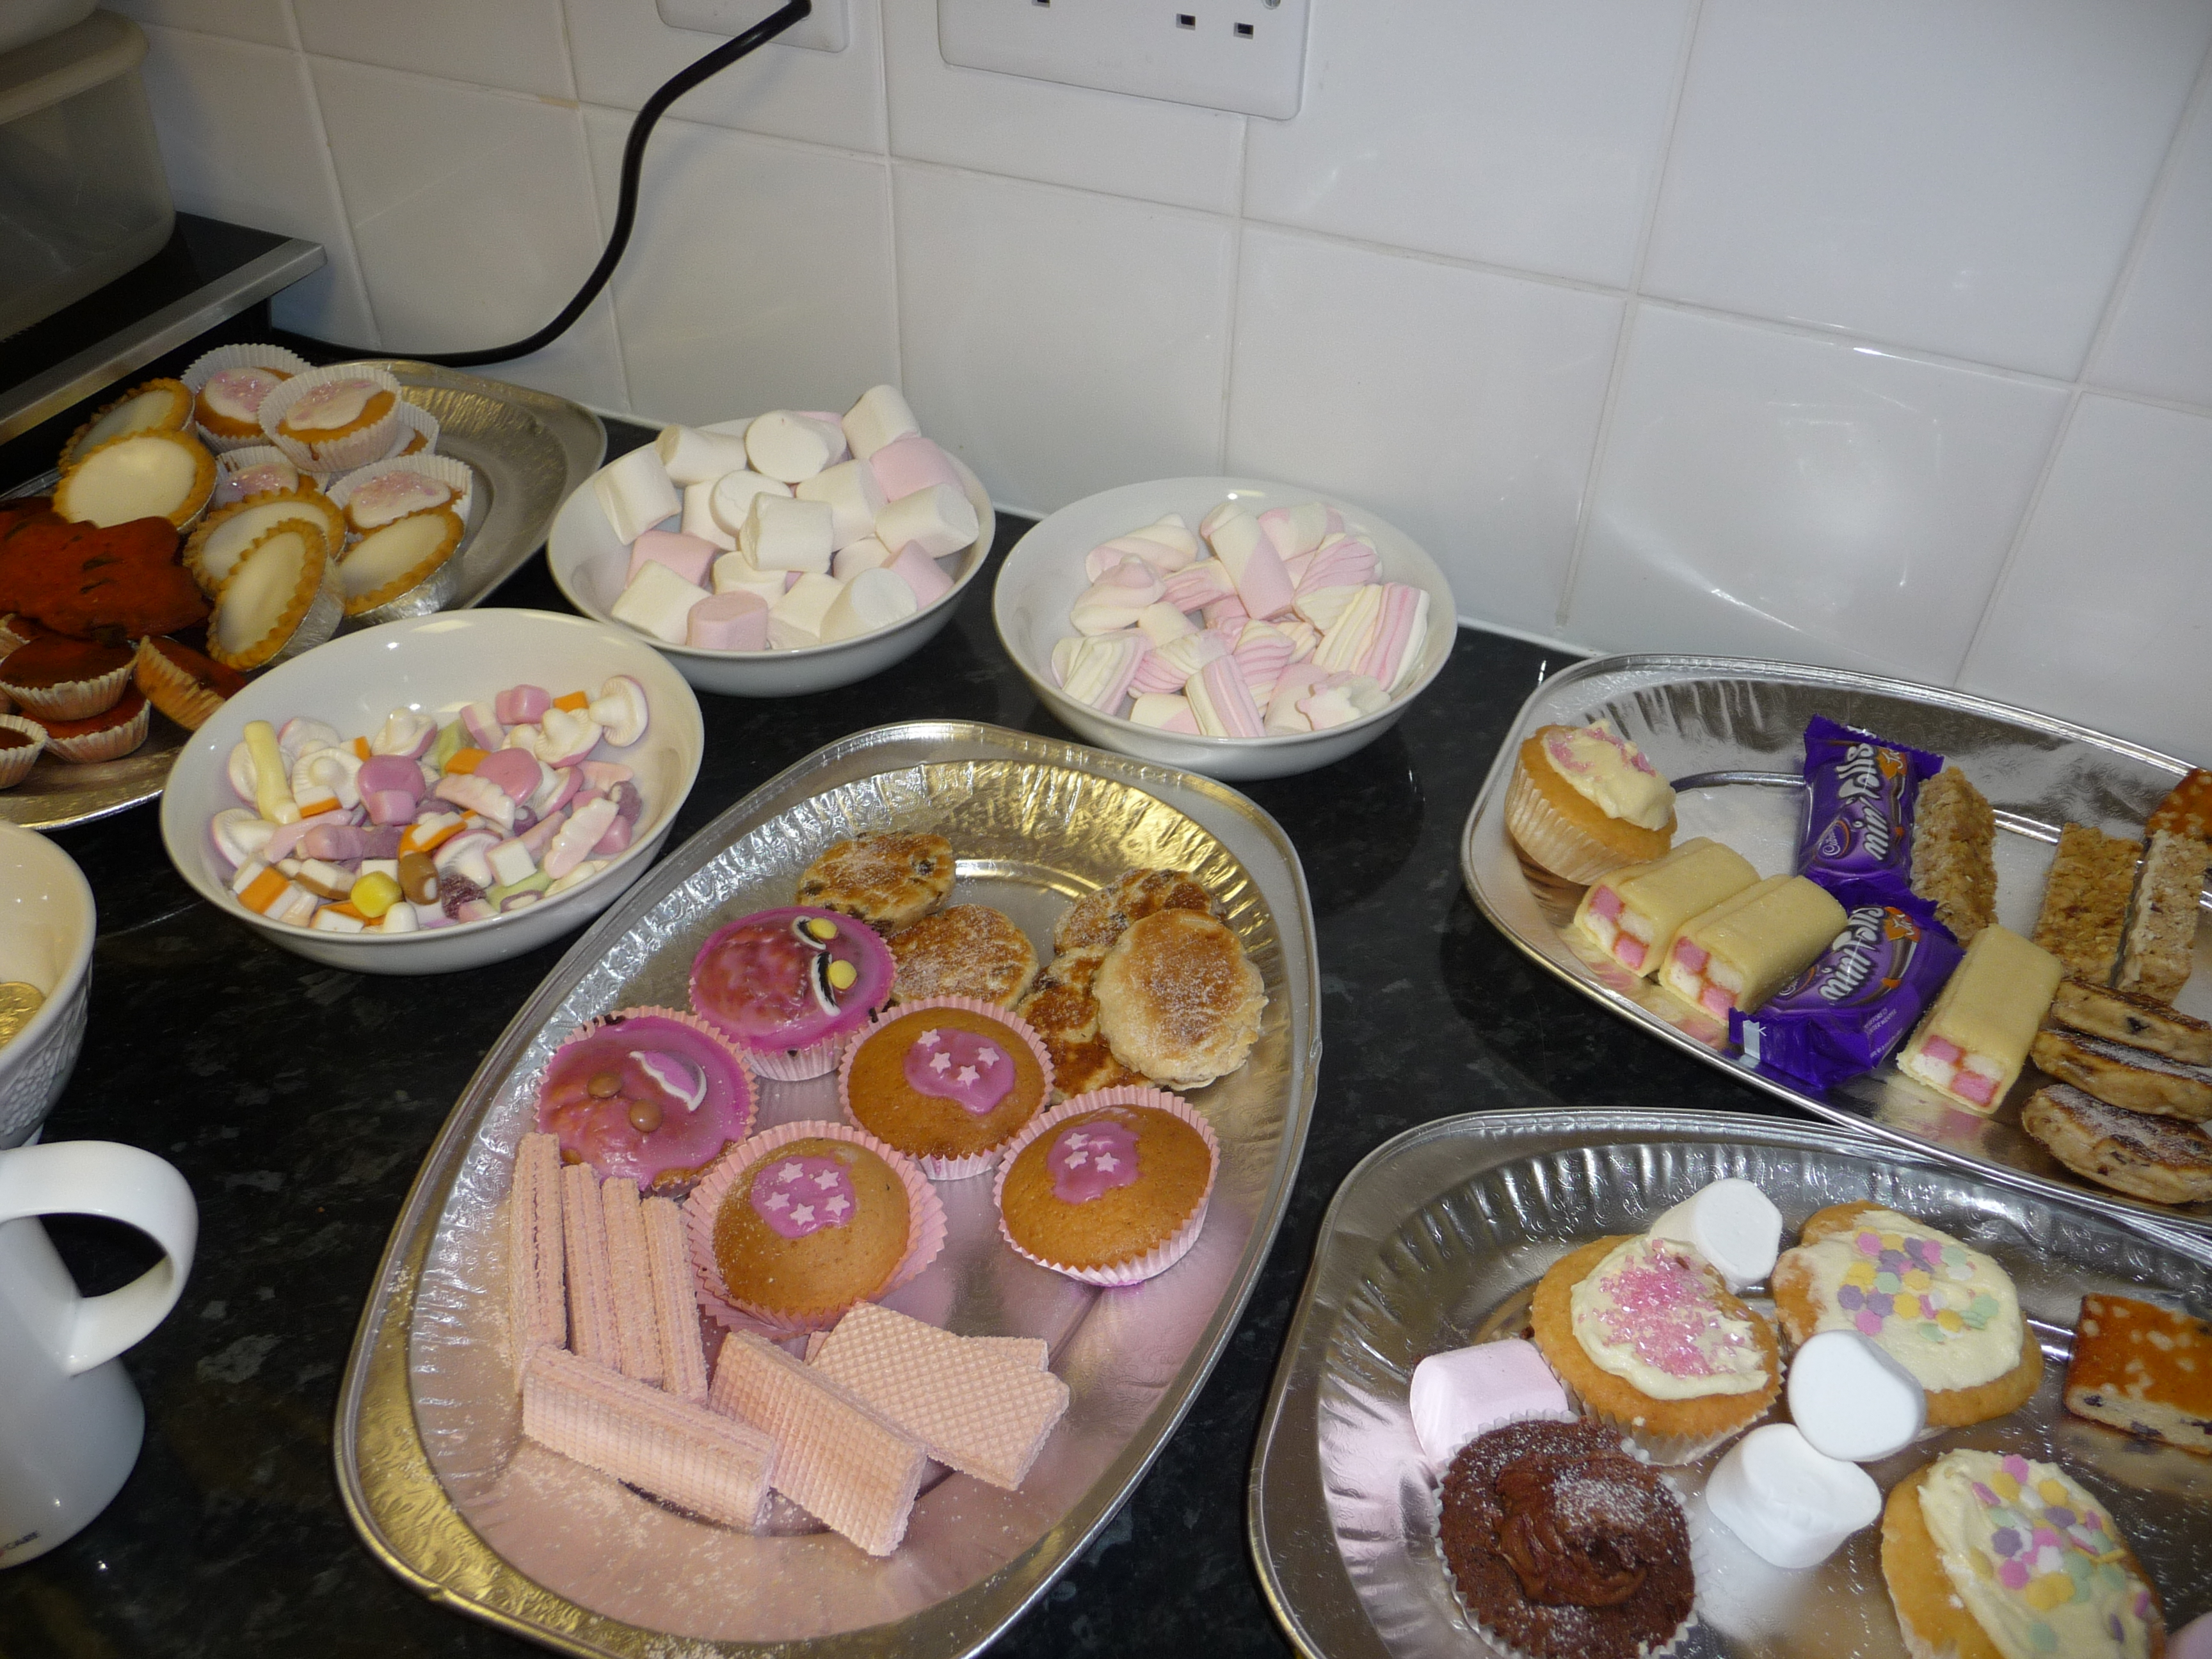 More cakes...